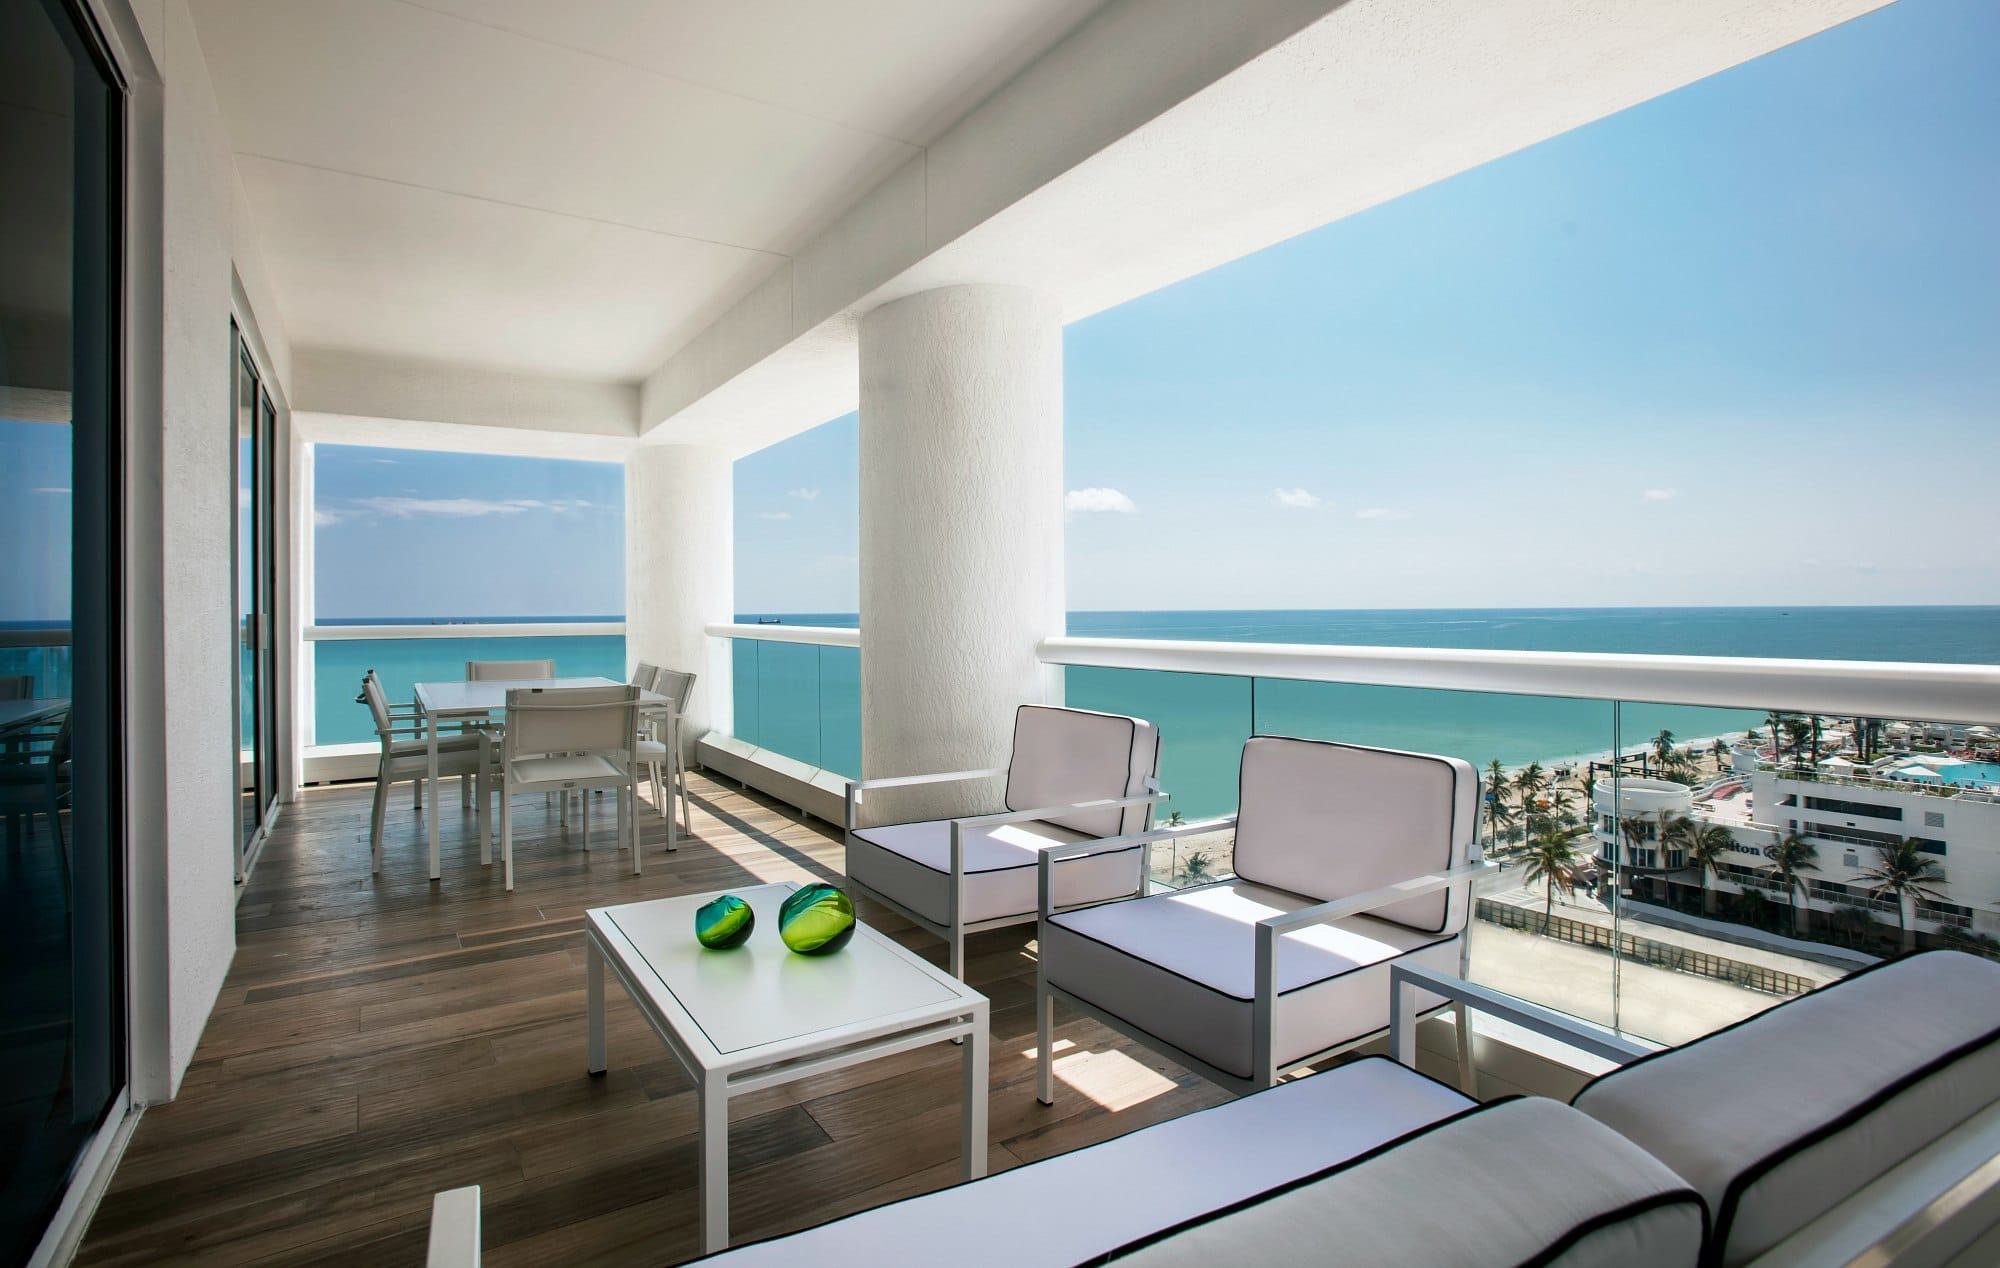 What a view at the Conrad Fort Lauderdale Beach!